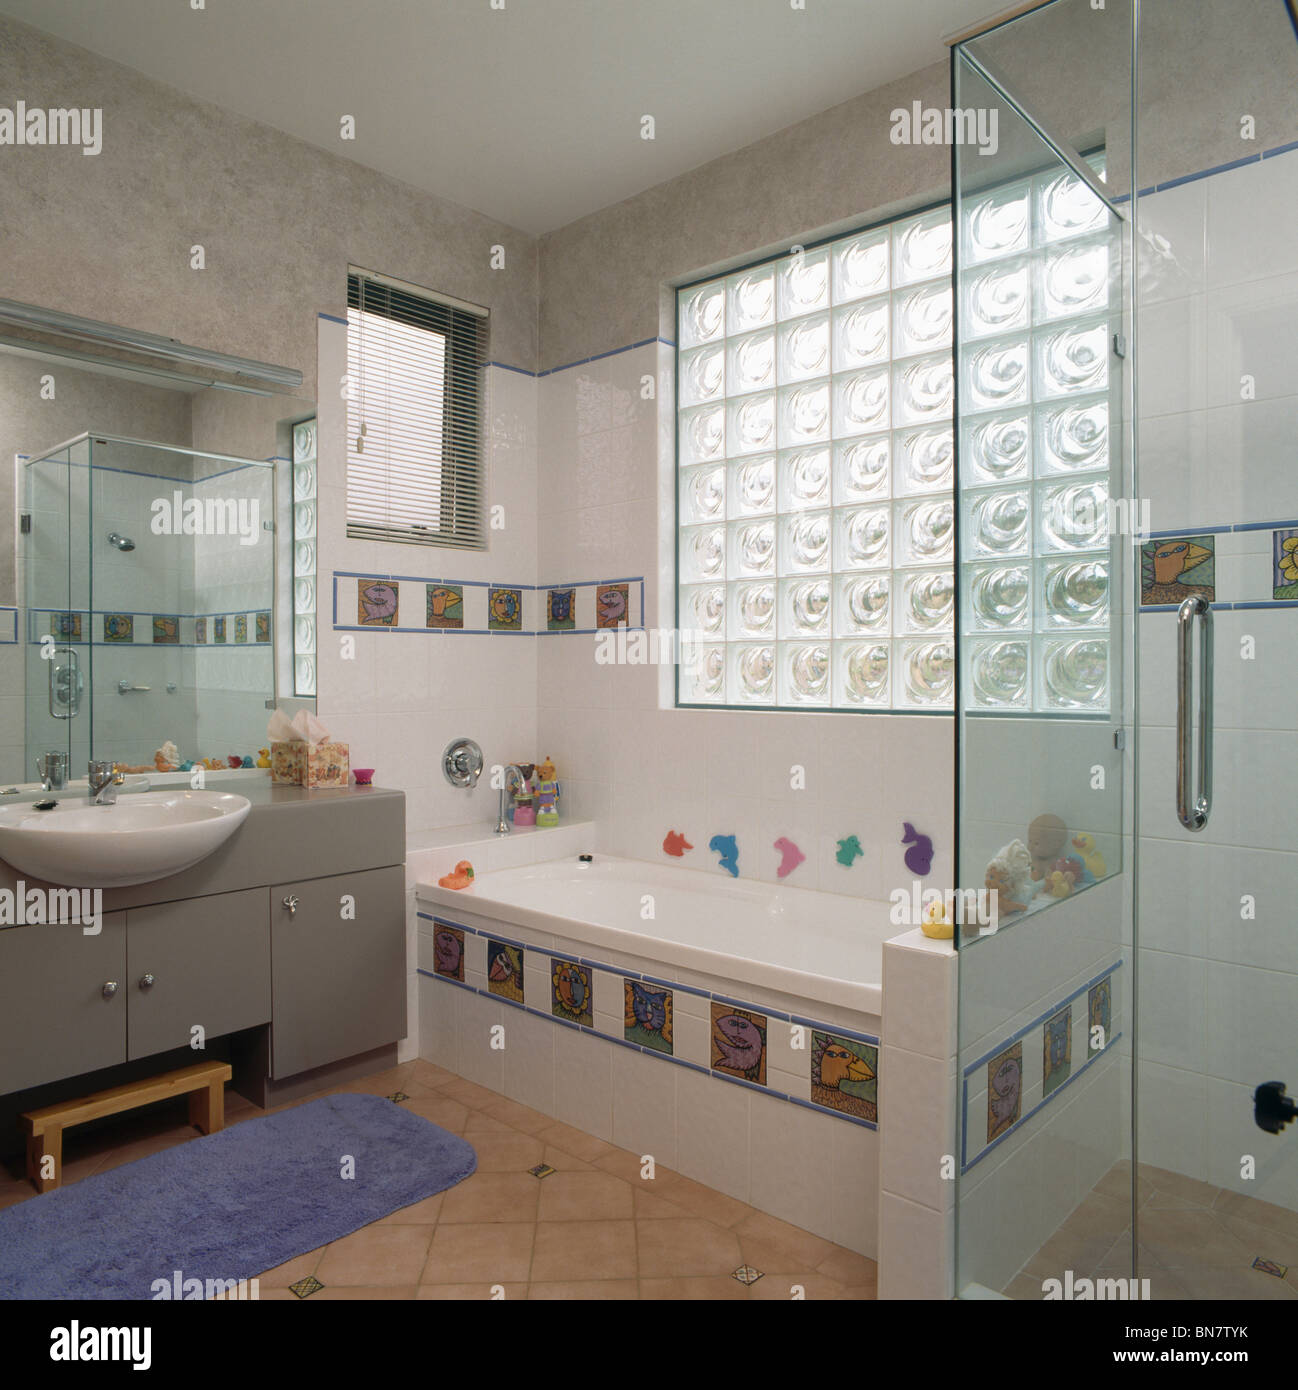 decorative glass block borders for a shower wall or windows.htm bathroom shower monochromatic stock photos   bathroom shower  bathroom shower monochromatic stock